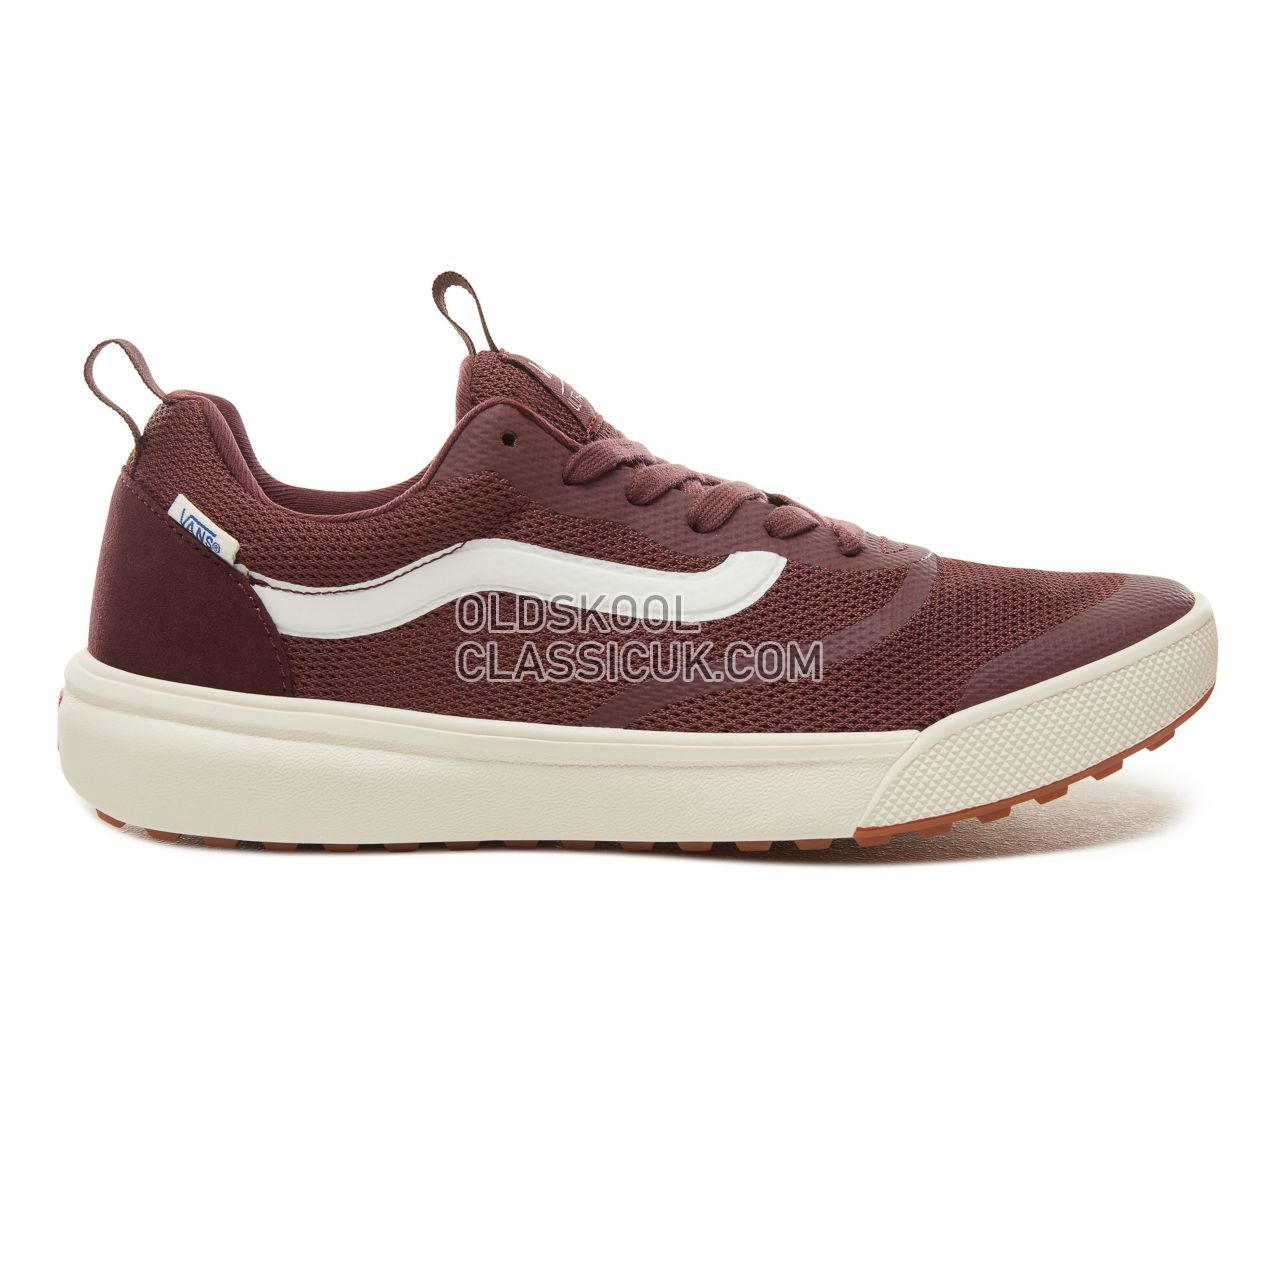 Vans UltraRange Rapidweld Sneakers Mens (Salt Wash) Catawba Grape/Marshmallow VA3MVUU6Q Shoes